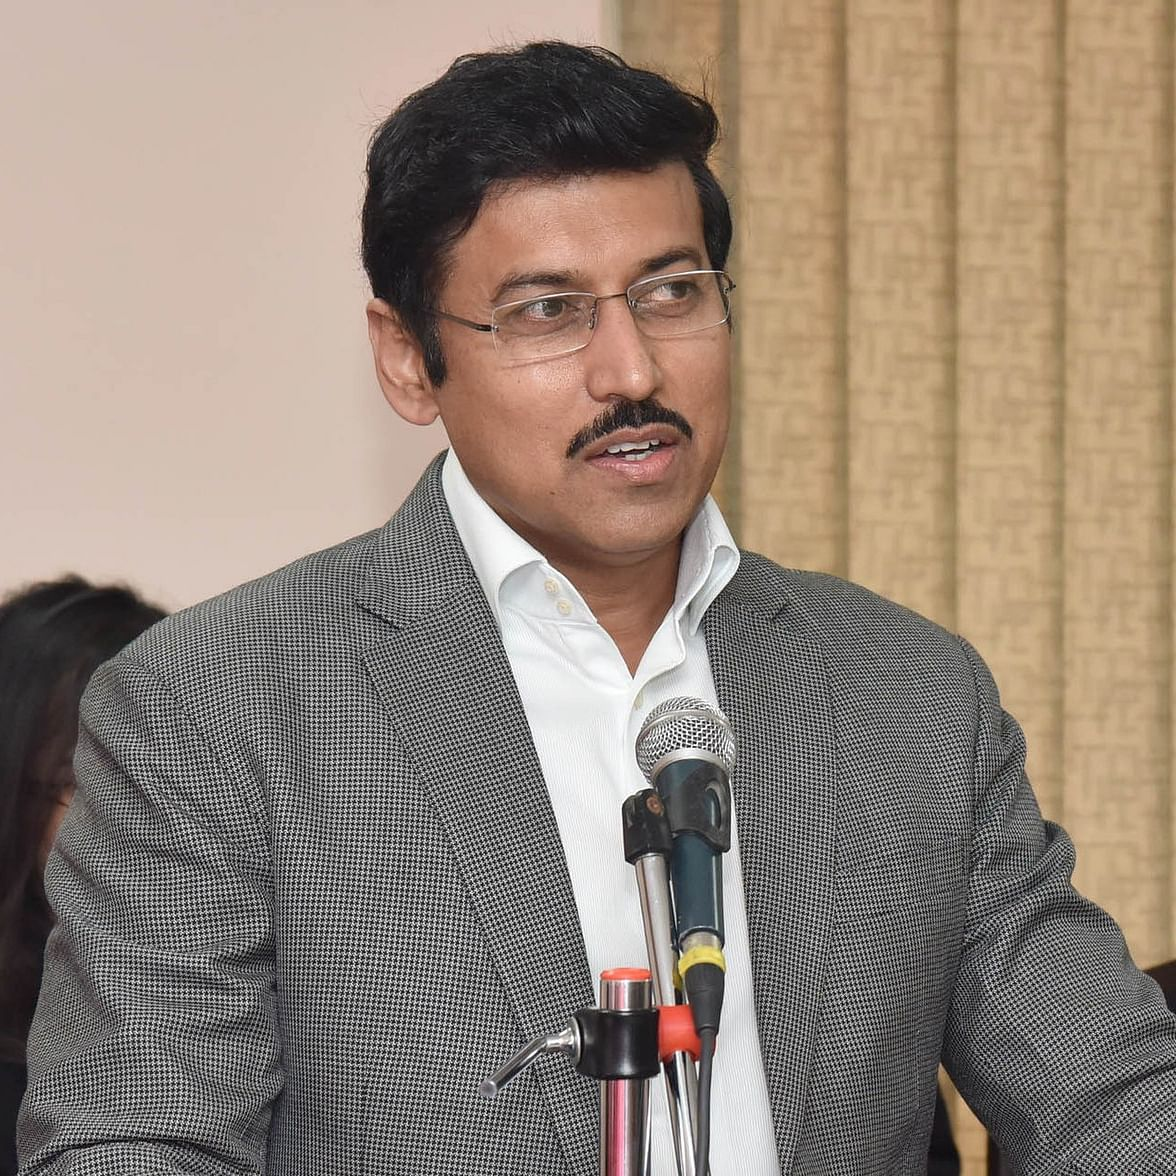 Rahul Gandhi should submit phone for investigation if he thinks it is tapped: BJP's Rajyavardhan Rathore on spying charges